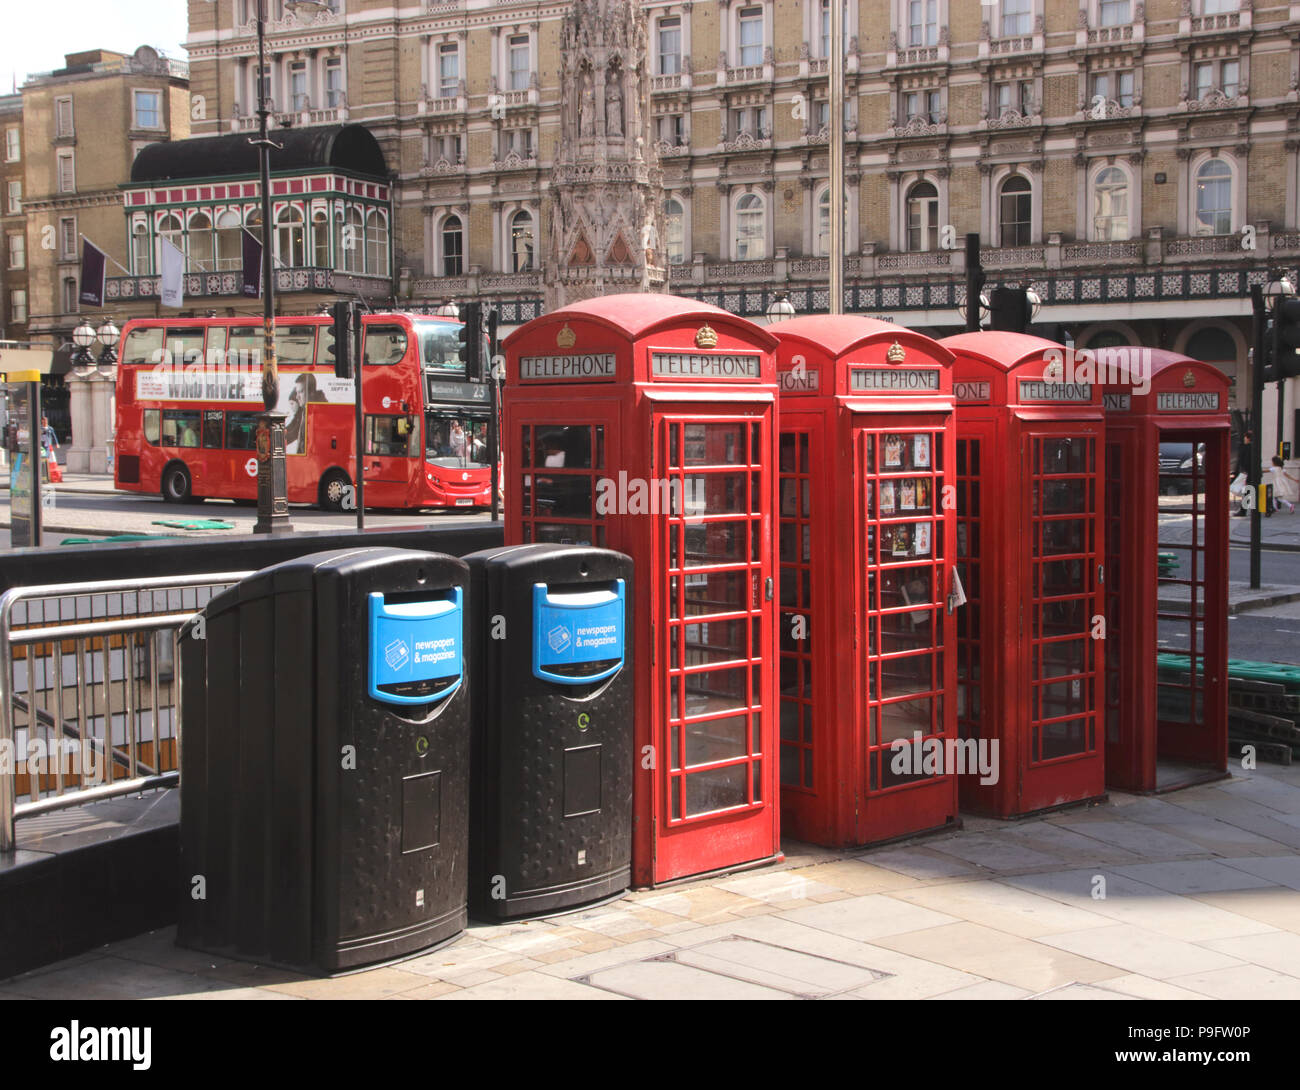 Telephone boxes The Strand London Stock Photo